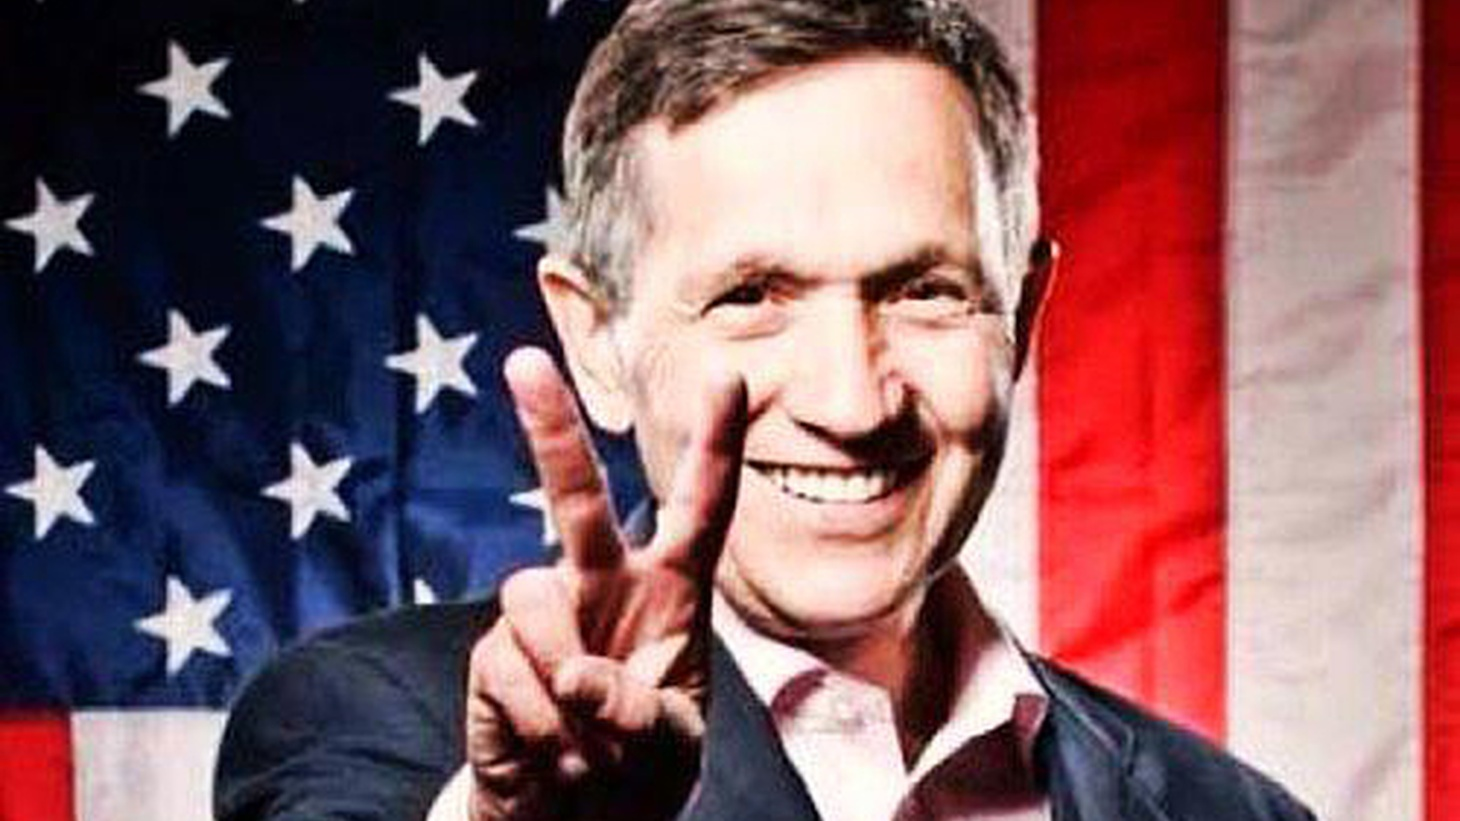 Robert Scheer sits down with long-time friend and former eight-term Ohio congressman Dennis Kucinich to talk about their friendship and how Kucinich's considers himself a non-ideological pragmatist.